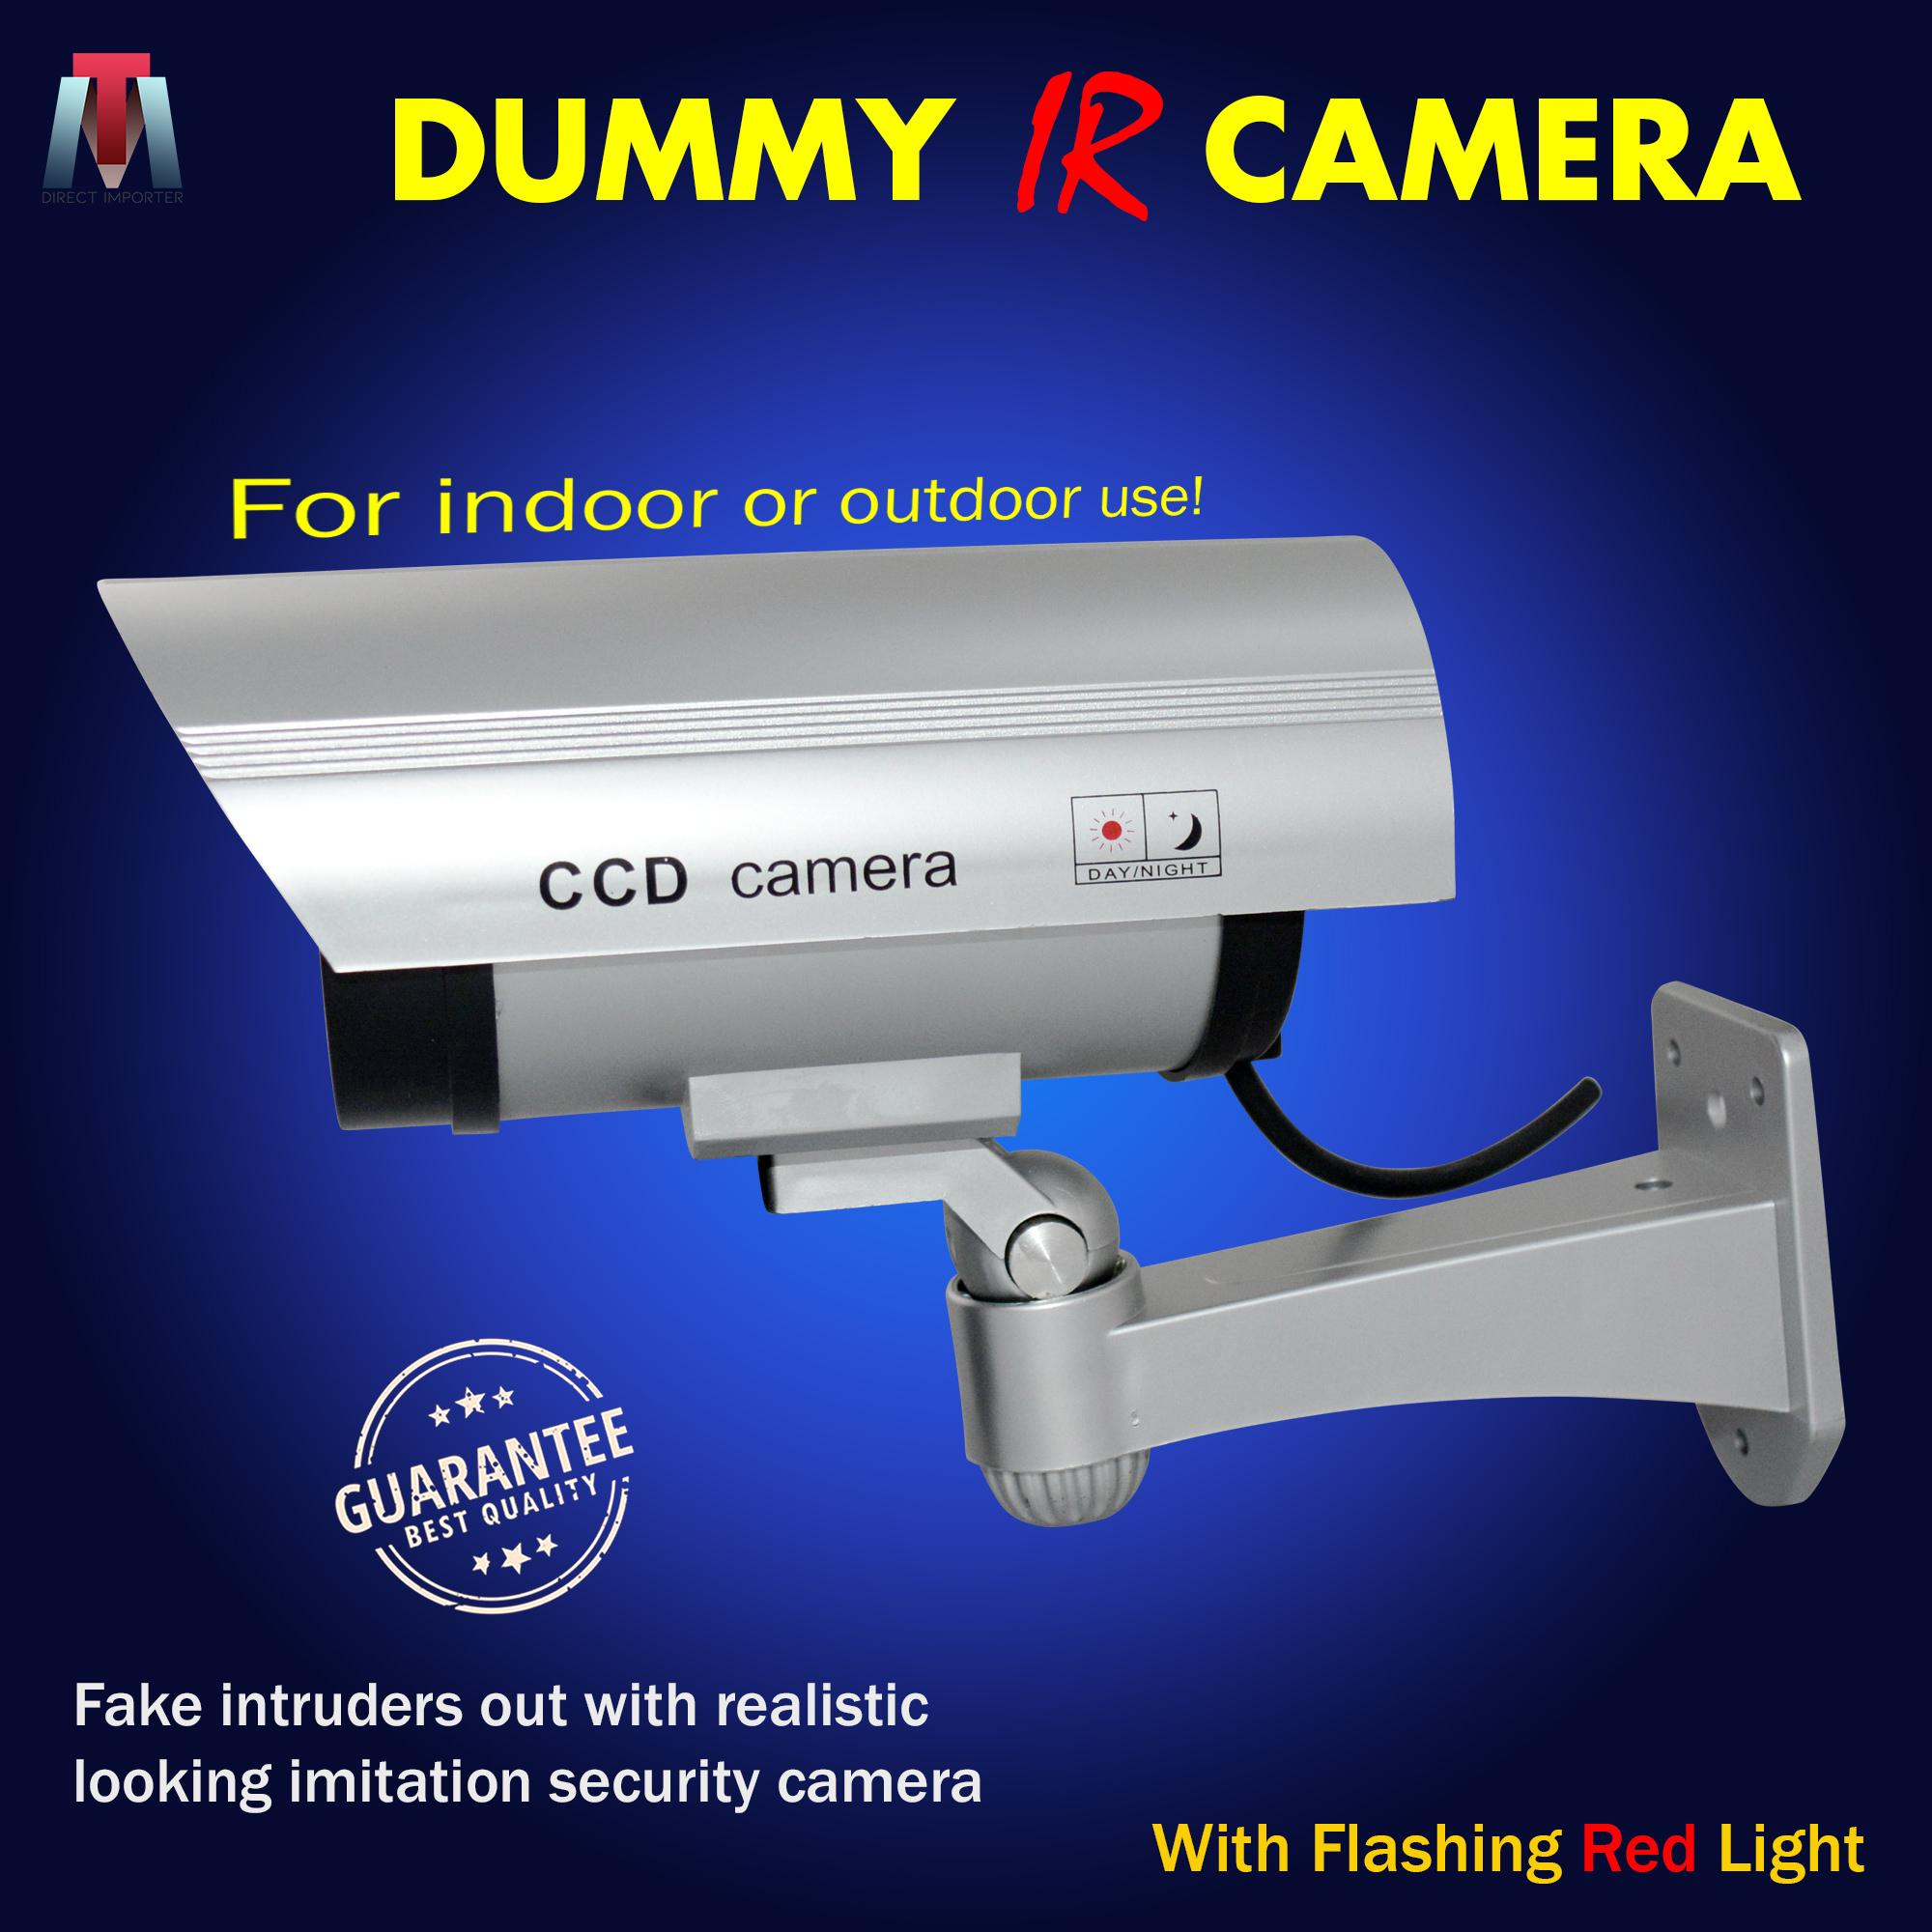 Dummy Home and Office Fake Security Camera by Marktony